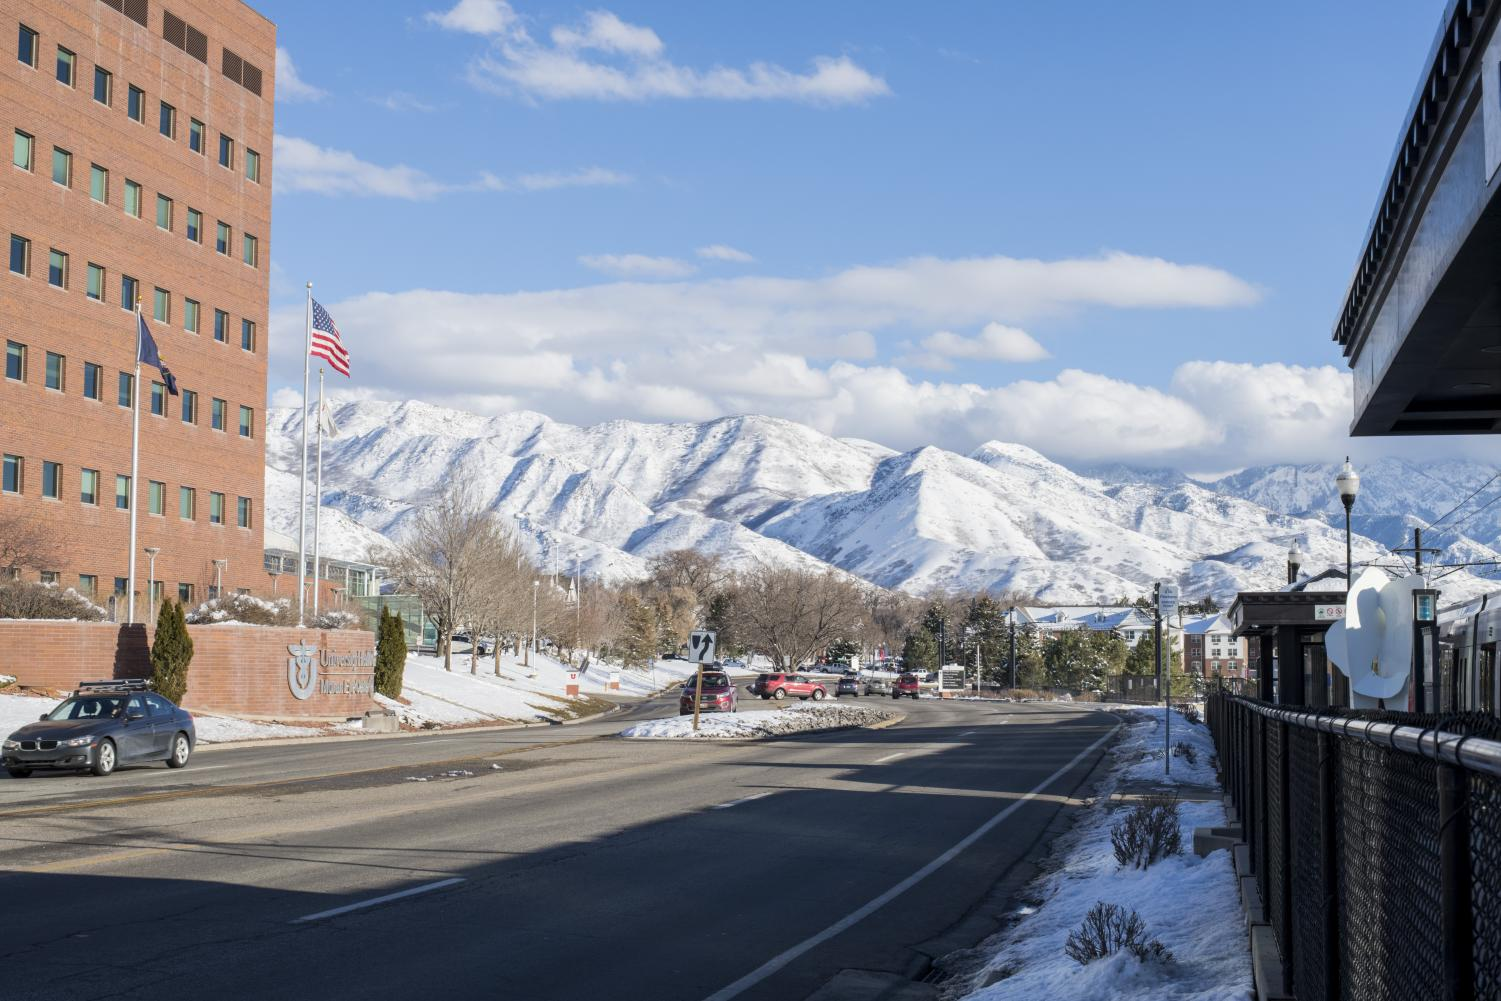 The University of Utah is located 4,783 feet above sea level. Recent research suggests the high elevation plays a role in high suicide rates. (Photo by Curtis Lin | Daily Utah Chronicle)